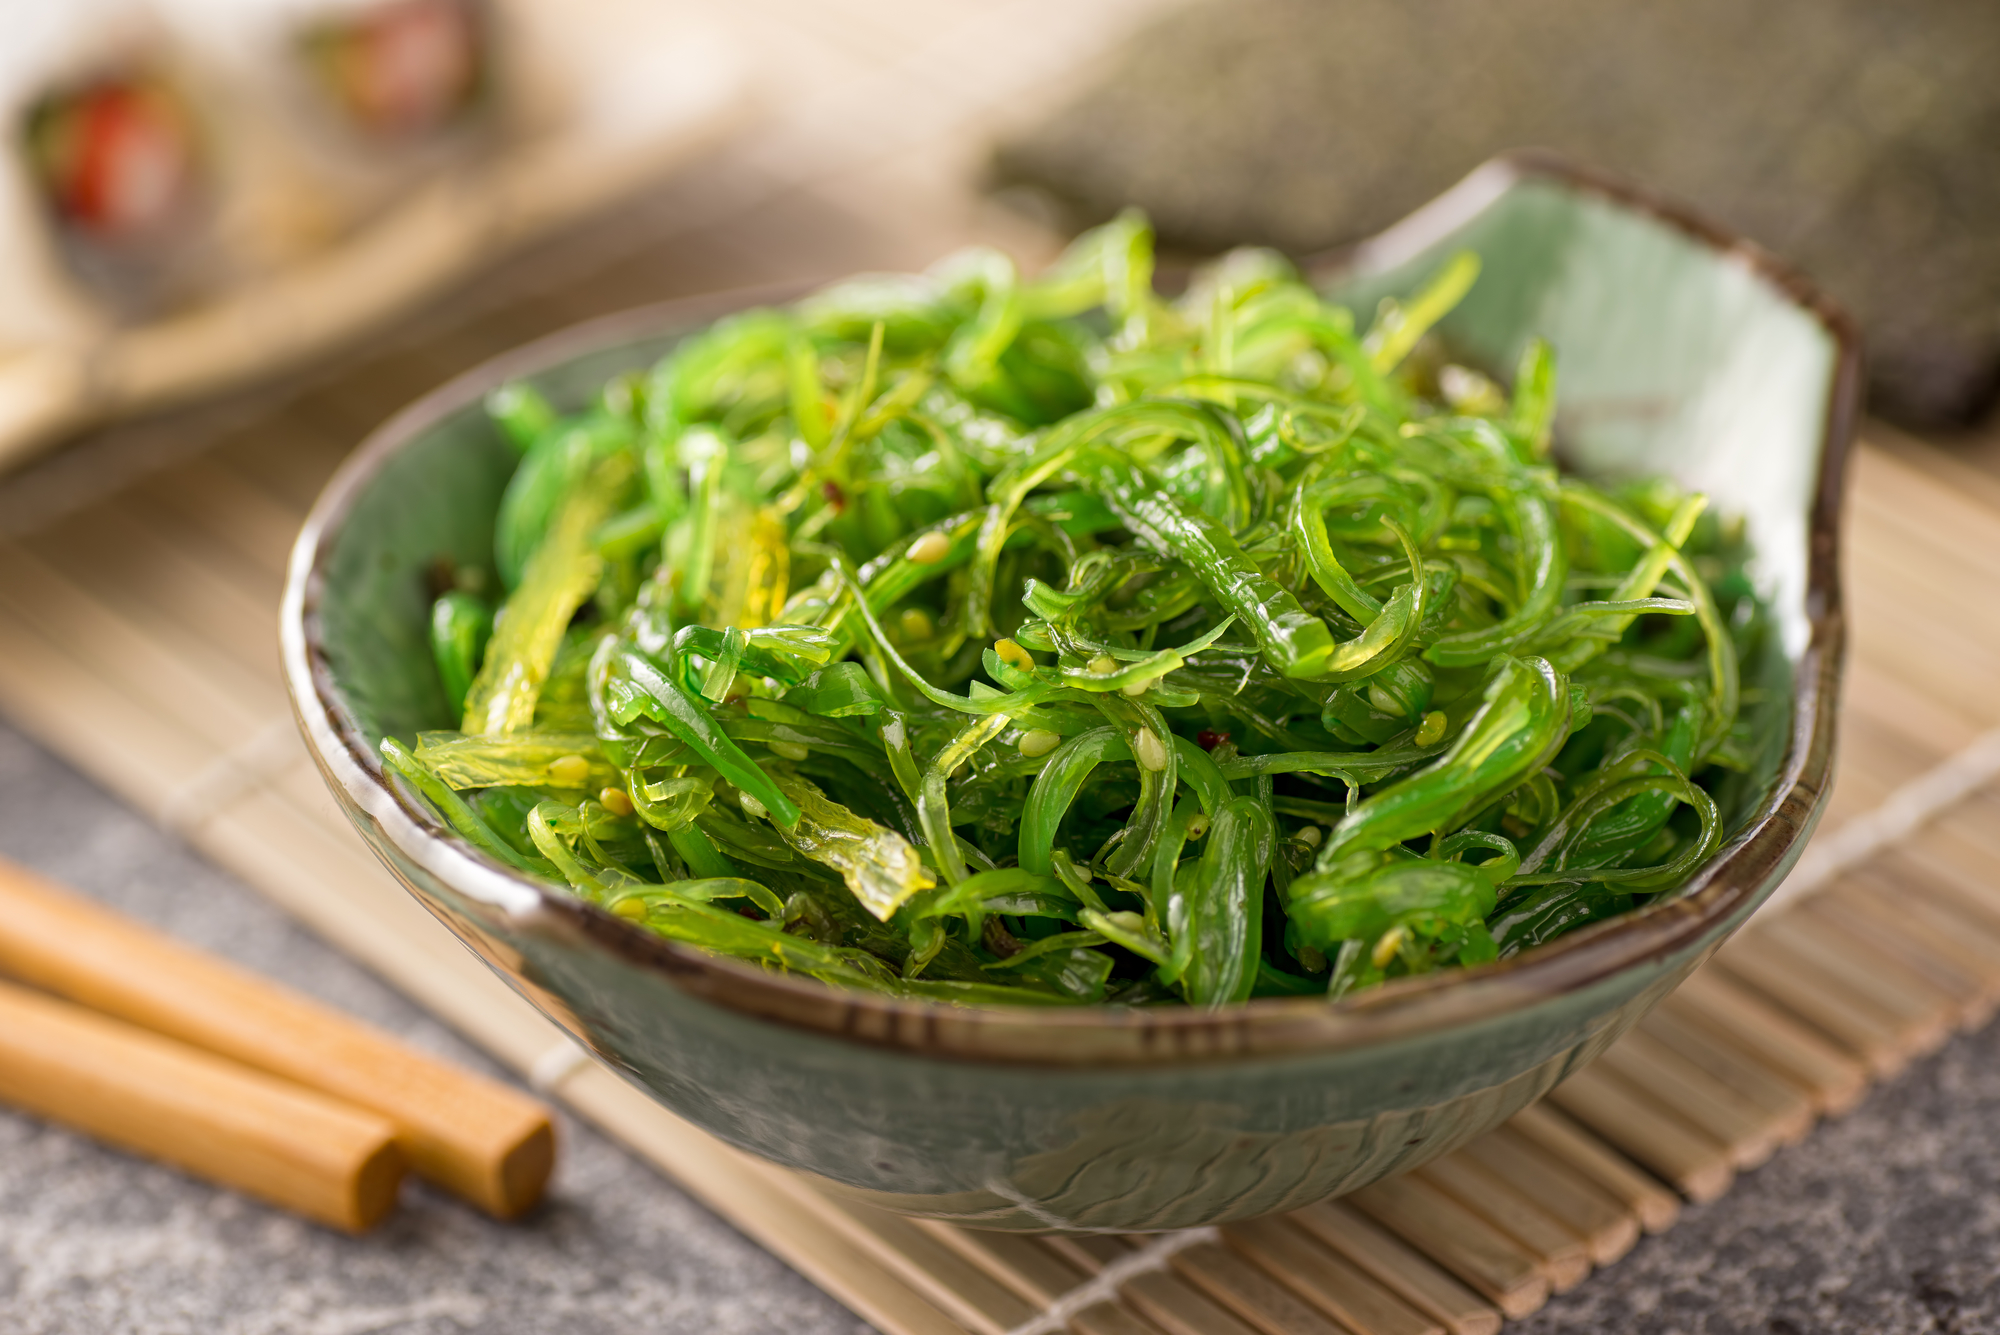 Seaweed - 9 Healthy Foods Rich In Iodine